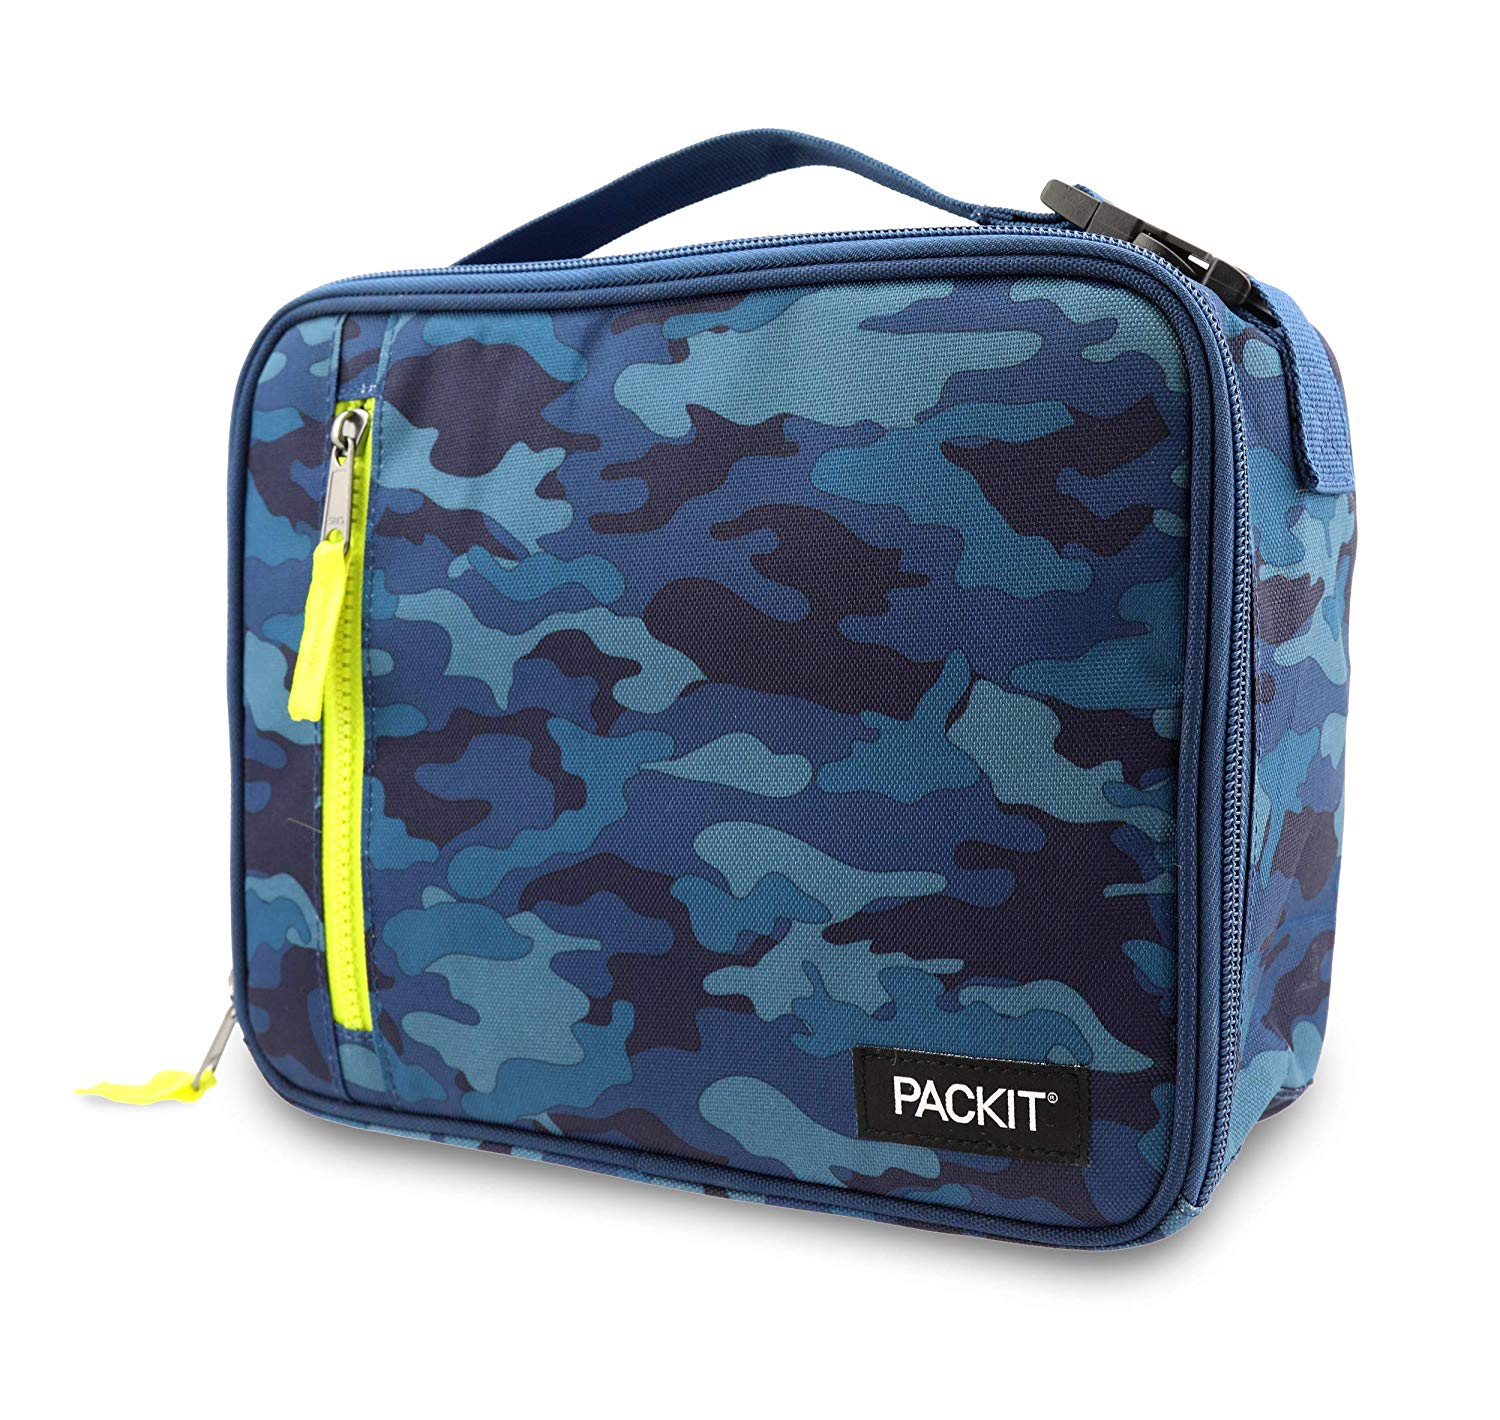 PackIt Freezable Classic Lunch Box   (https://www.amazon.co